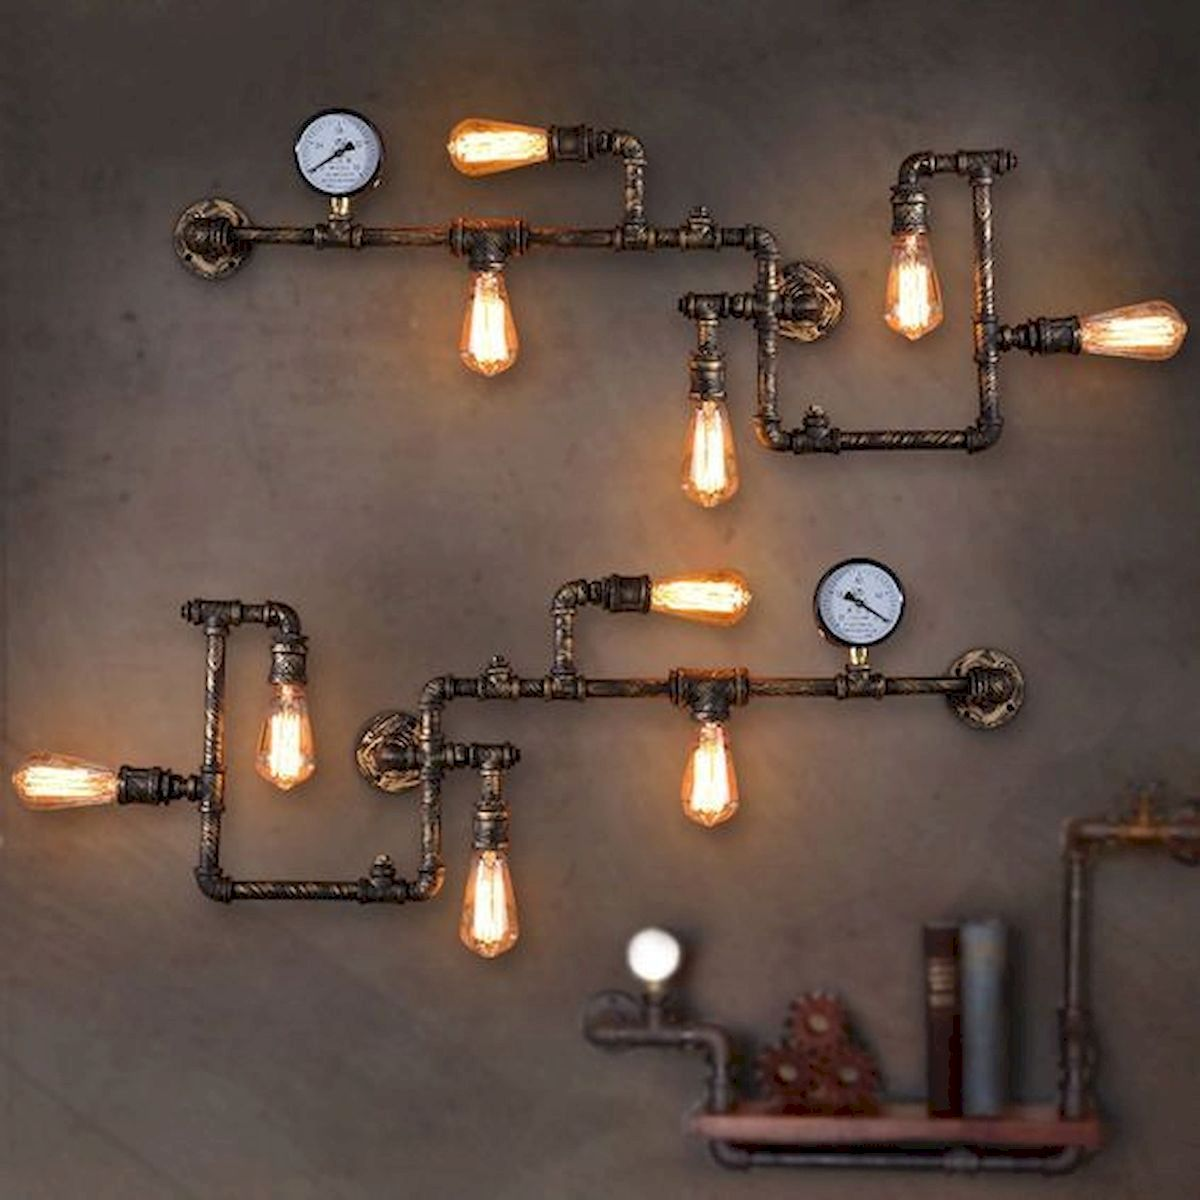 40 Fantastic DIY Lamps Decoration Ideas for Your Home (31)